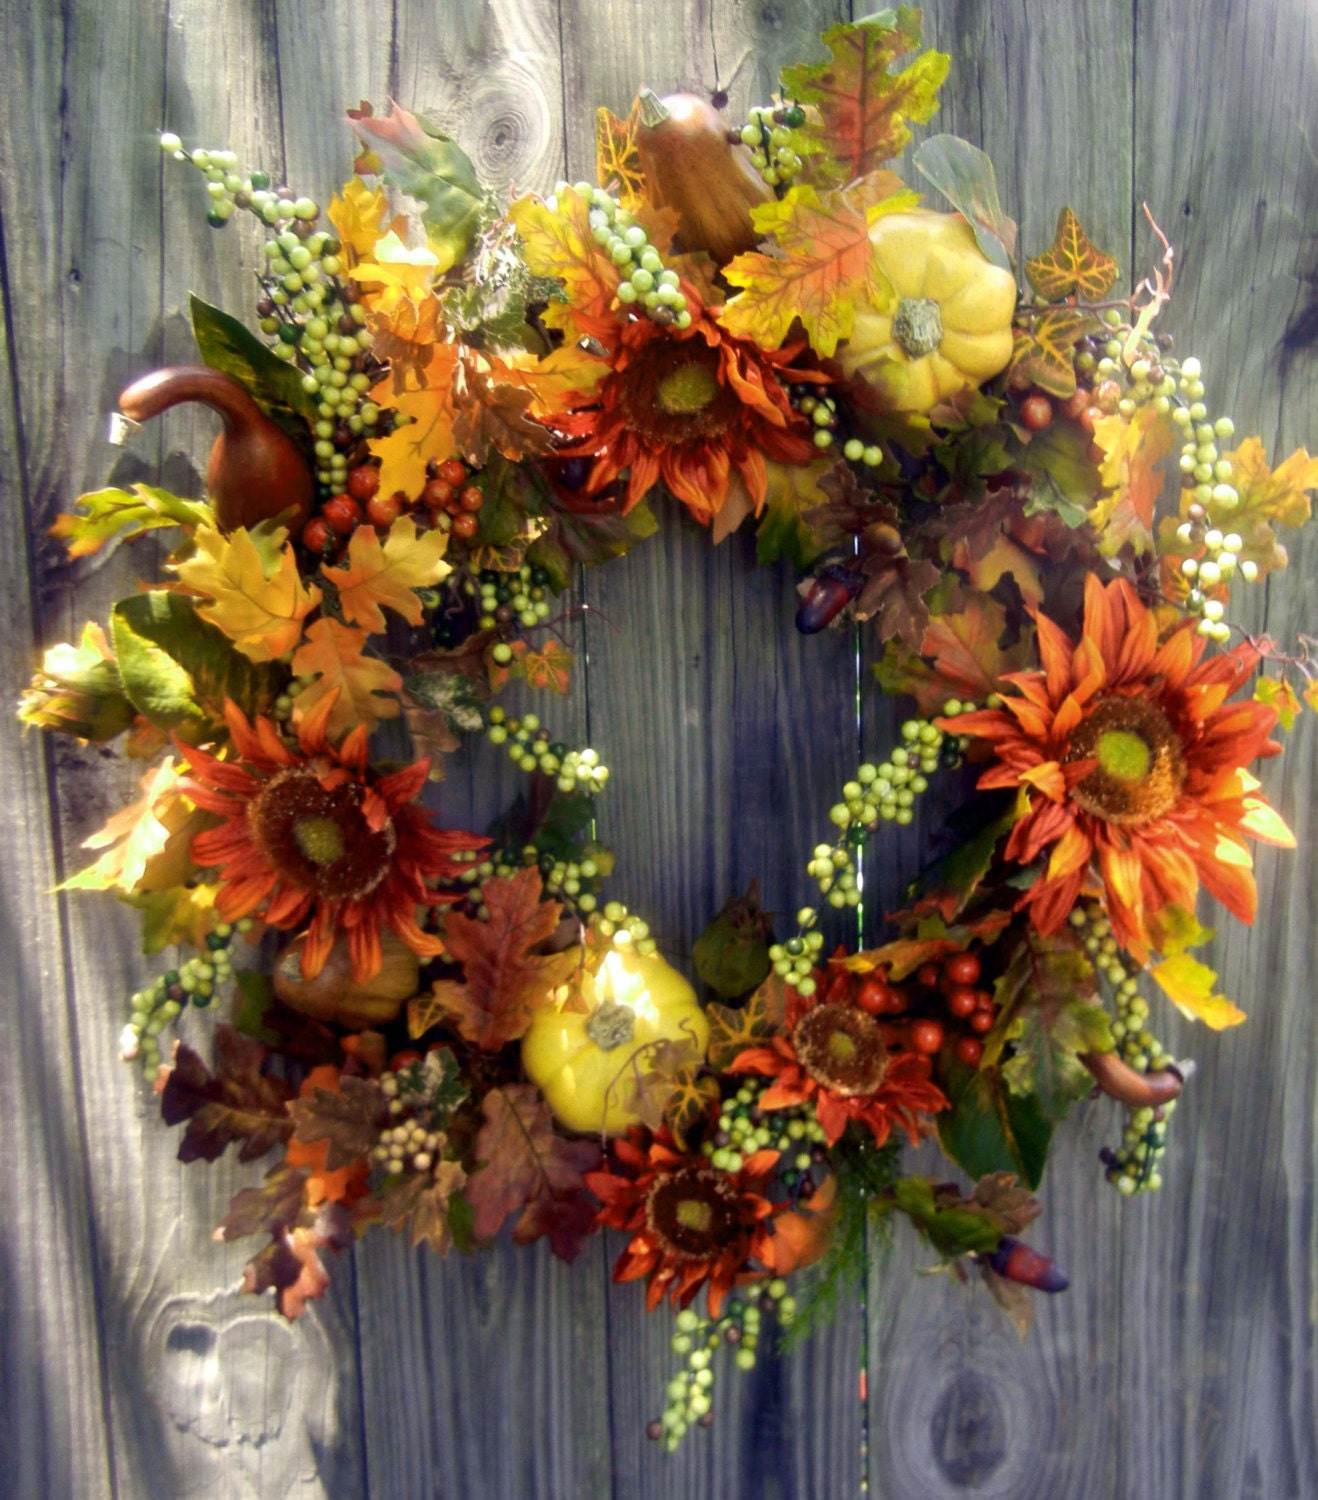 Fall Wreath For The Door Autumn Wreath Pumpkin By Forevermore1